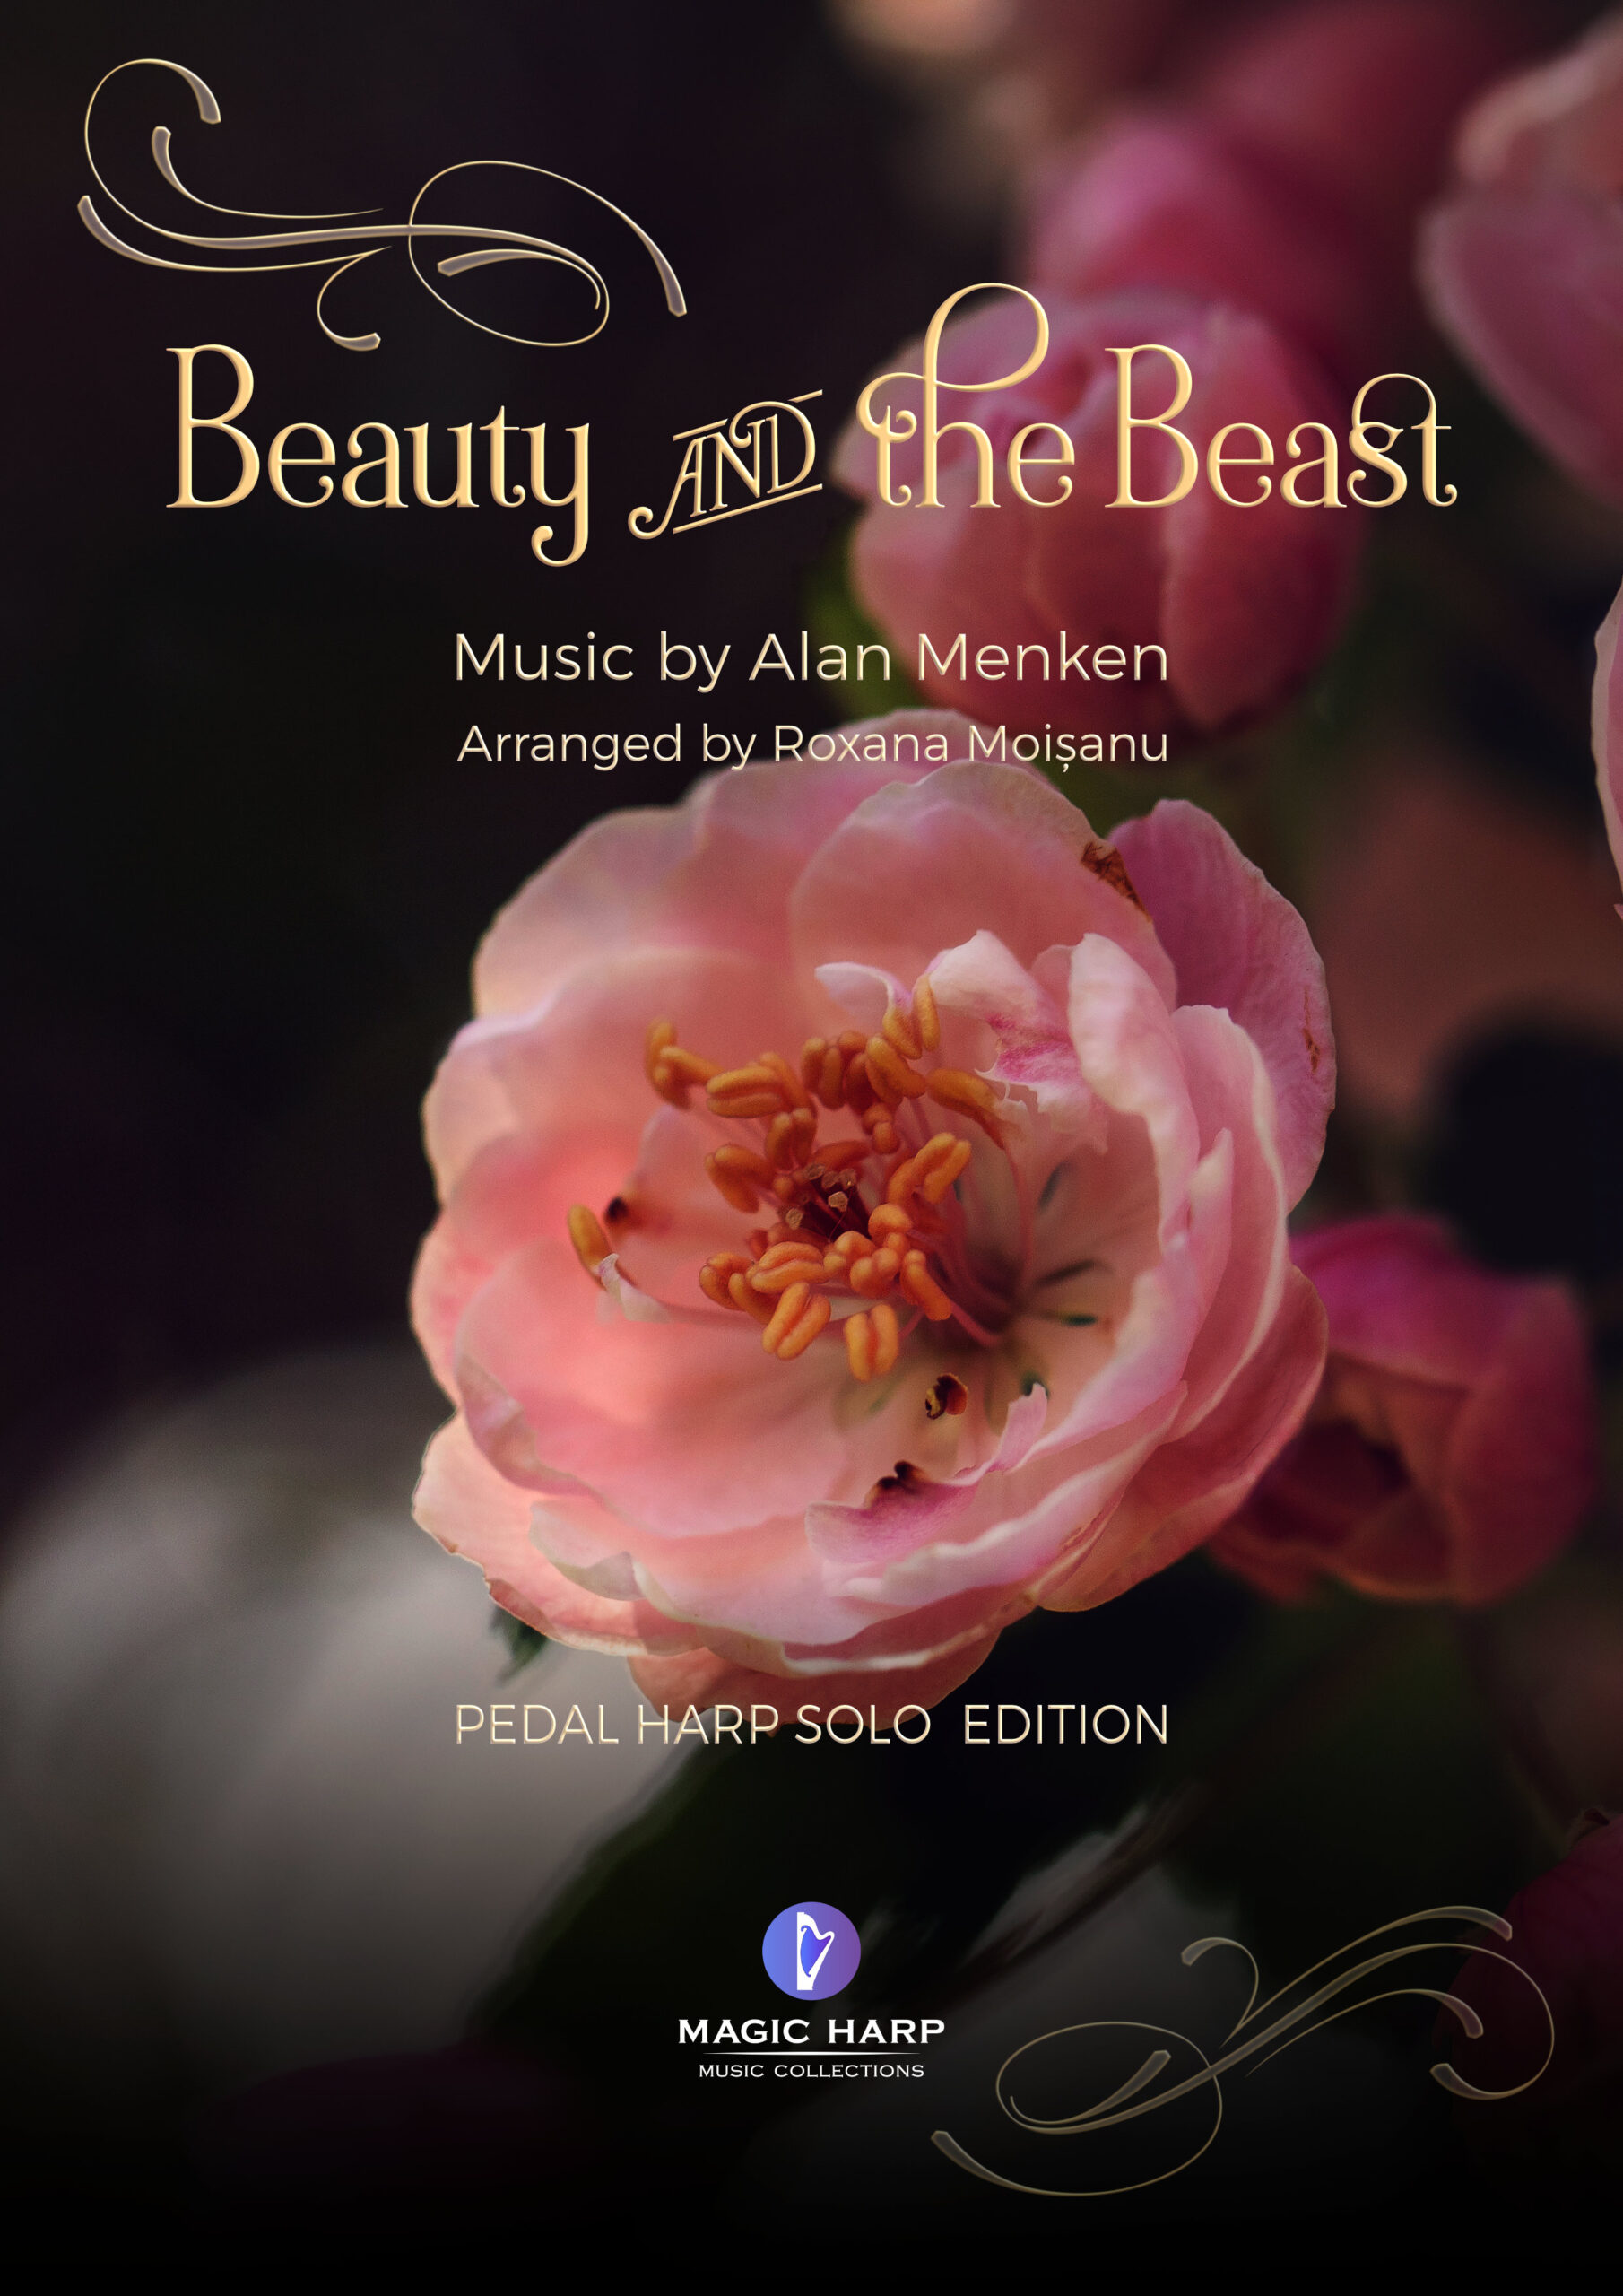 Beauty and the beast cover by Roxana Moisanu - PEDAL HARP SOLO EDITION